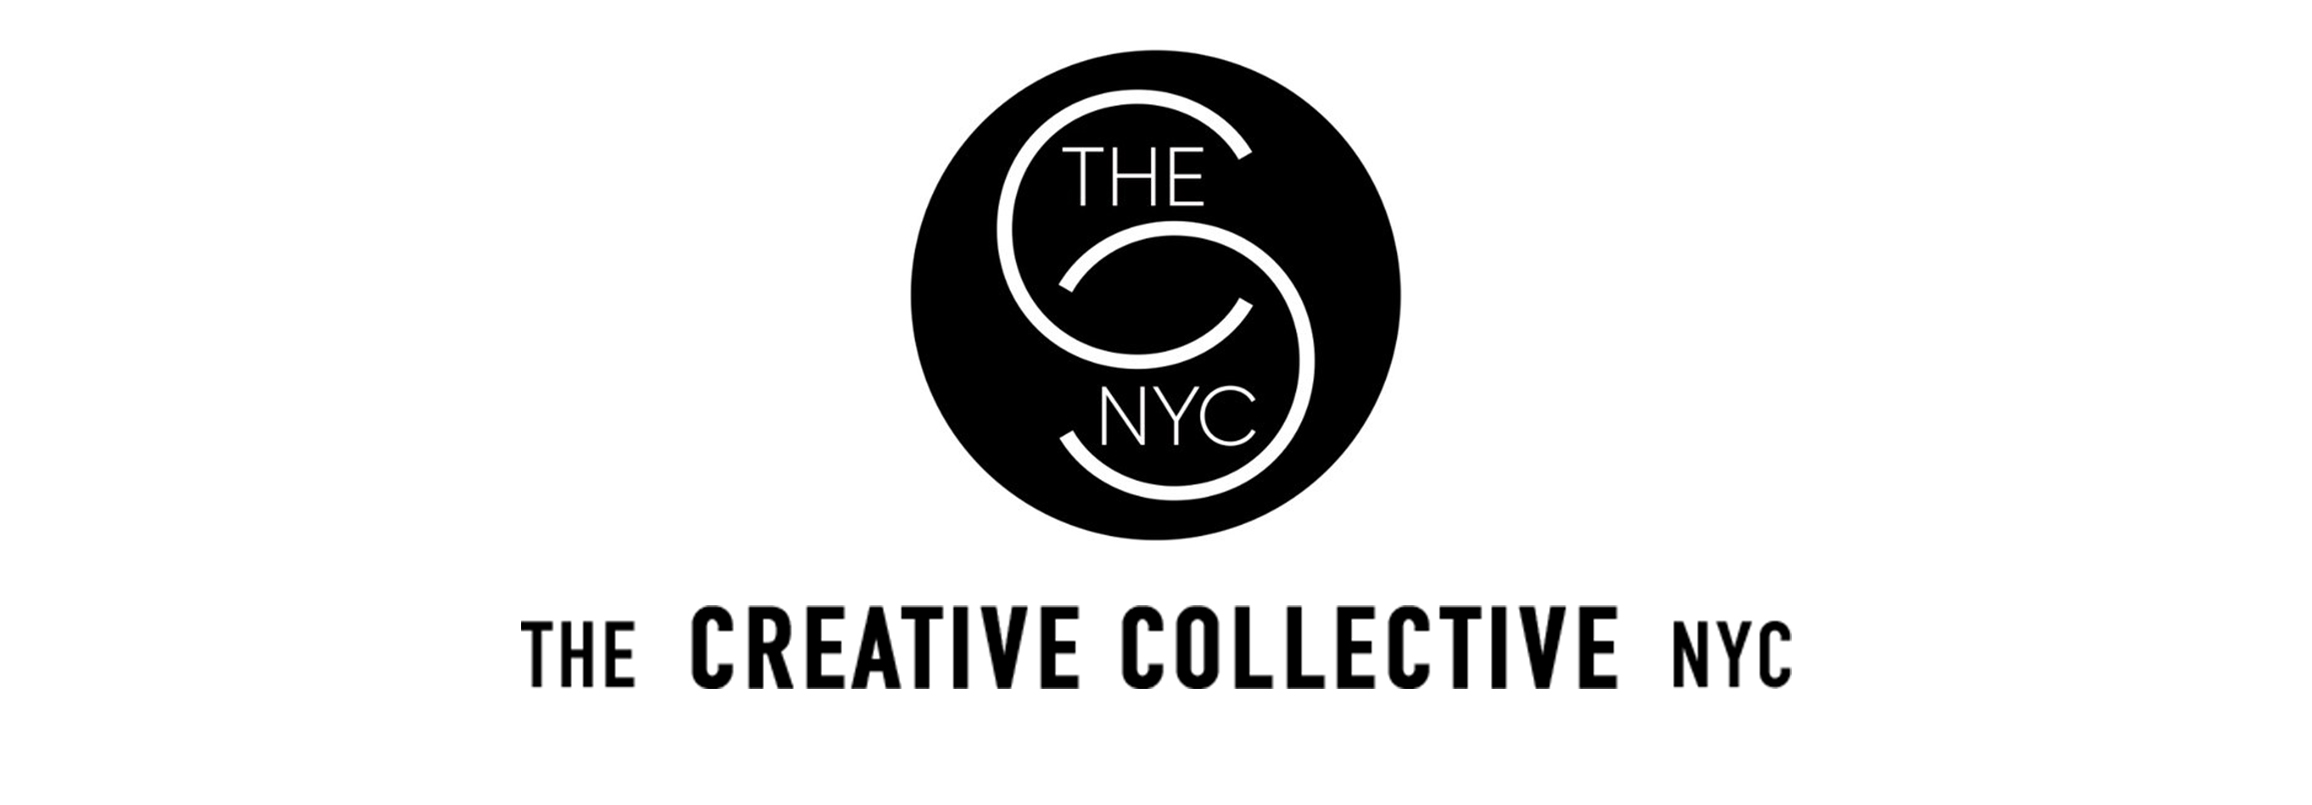 The Creative Collective NYC.jpg